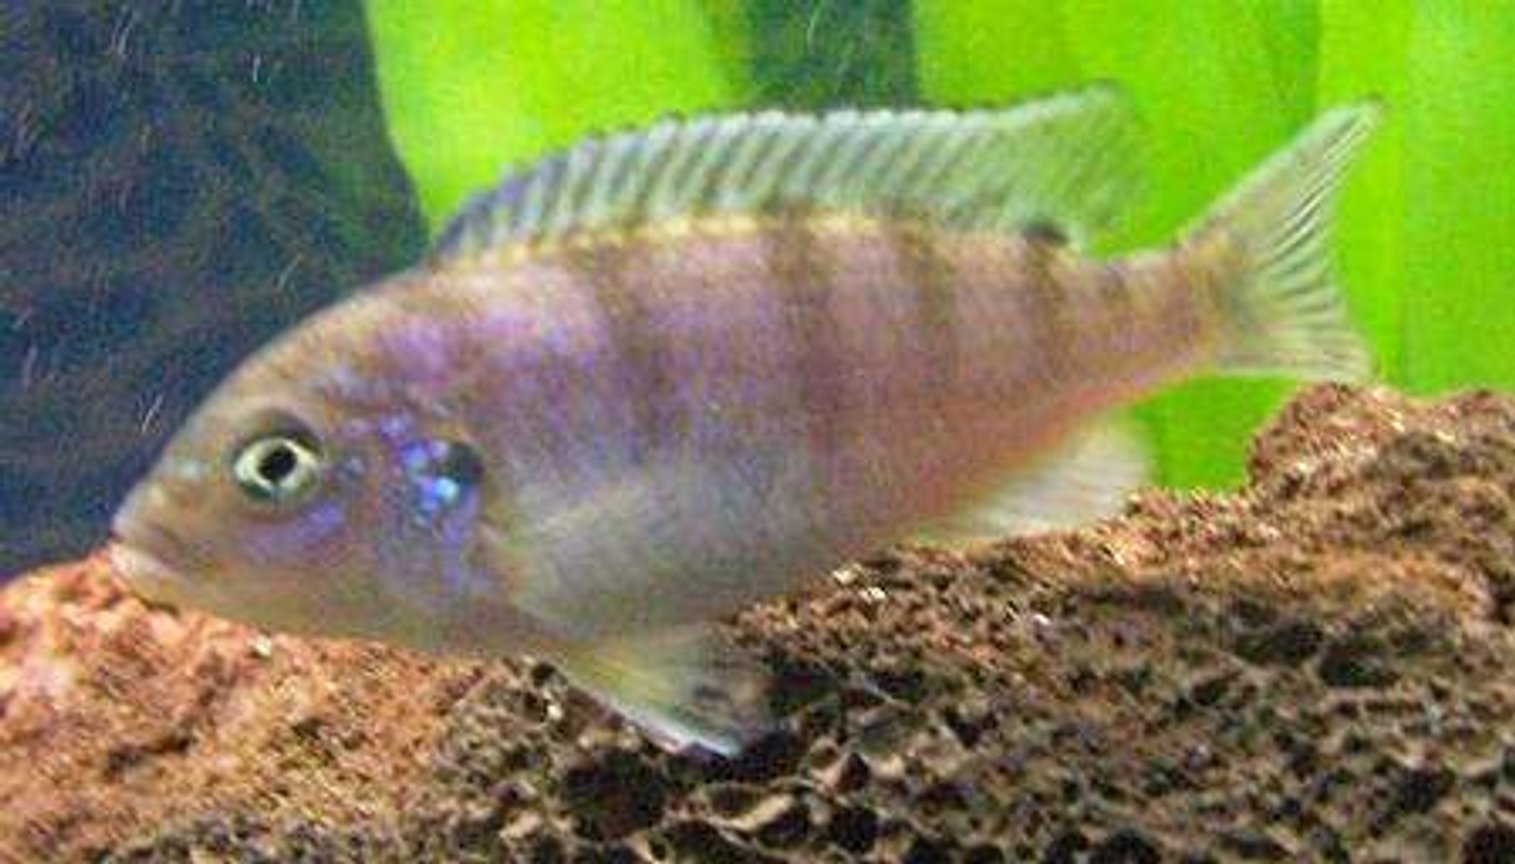 freshwater fish - metriaclima lombardoi - kenyi cichlid stocking in 47 gallons tank - Female Kenyi Cichlid. She is the Queen of the tank.